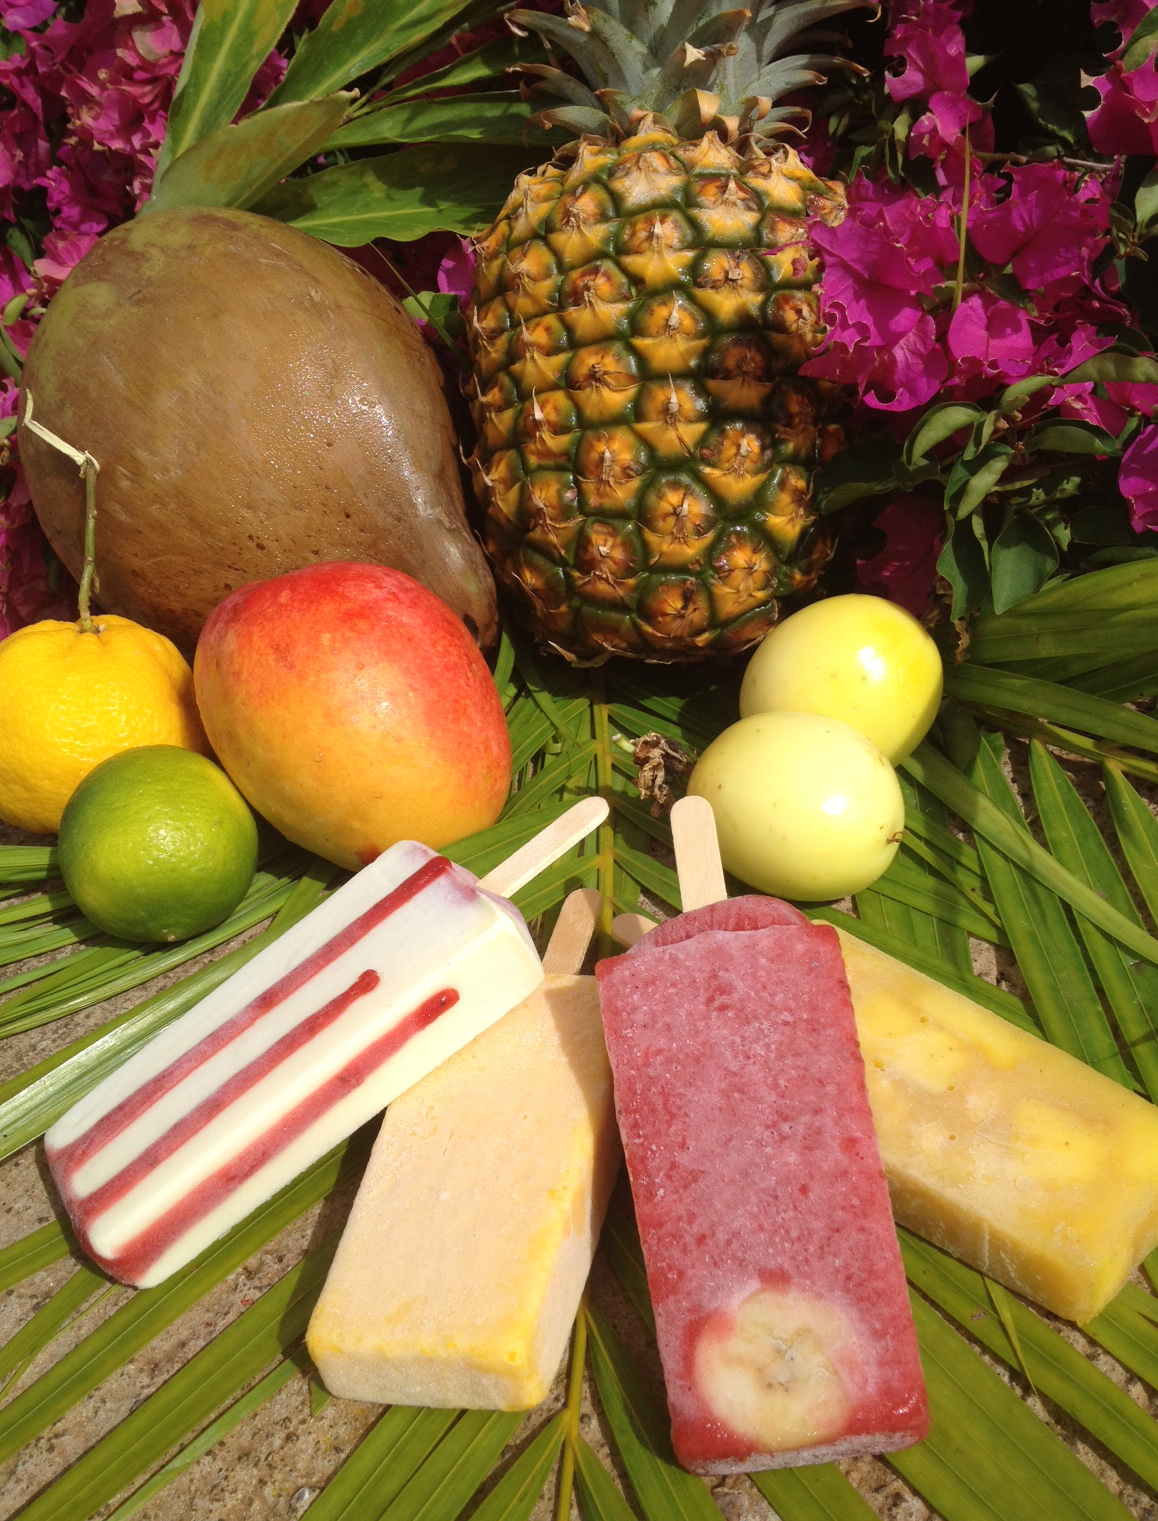 Shaka Pops wins Best New Food Product at 2012 Maui Agricultural Festival